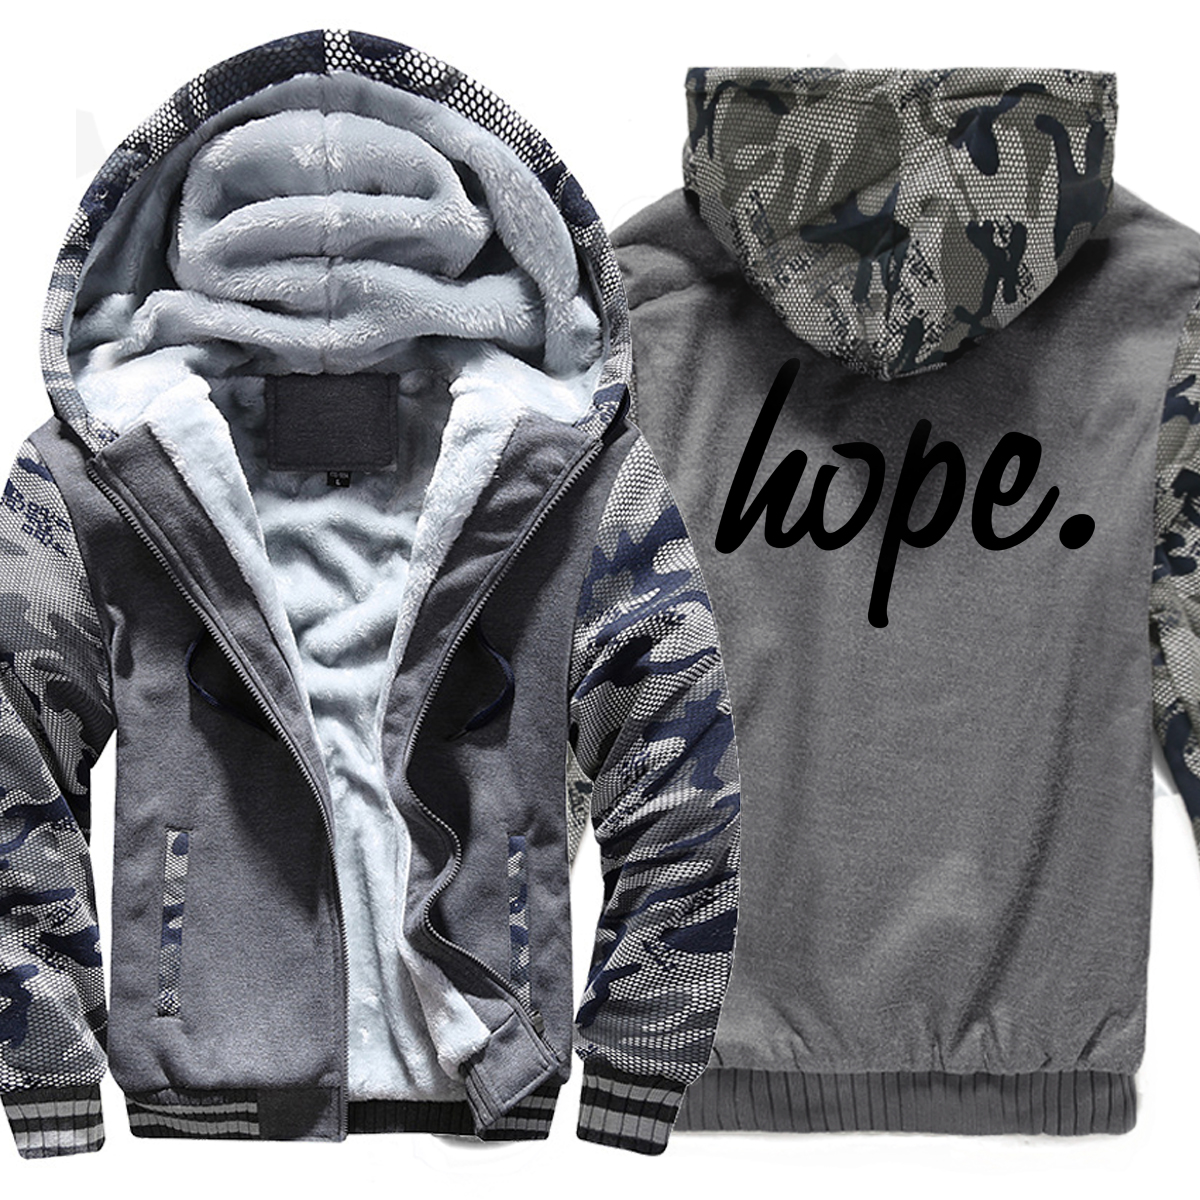 HOPE.Fashion Hoodies Men 2019 Hot Brand Print Camouflage Sweatshirt Winter Fleece Thick Hoodie Harajuku Tracksuits Hip Hop